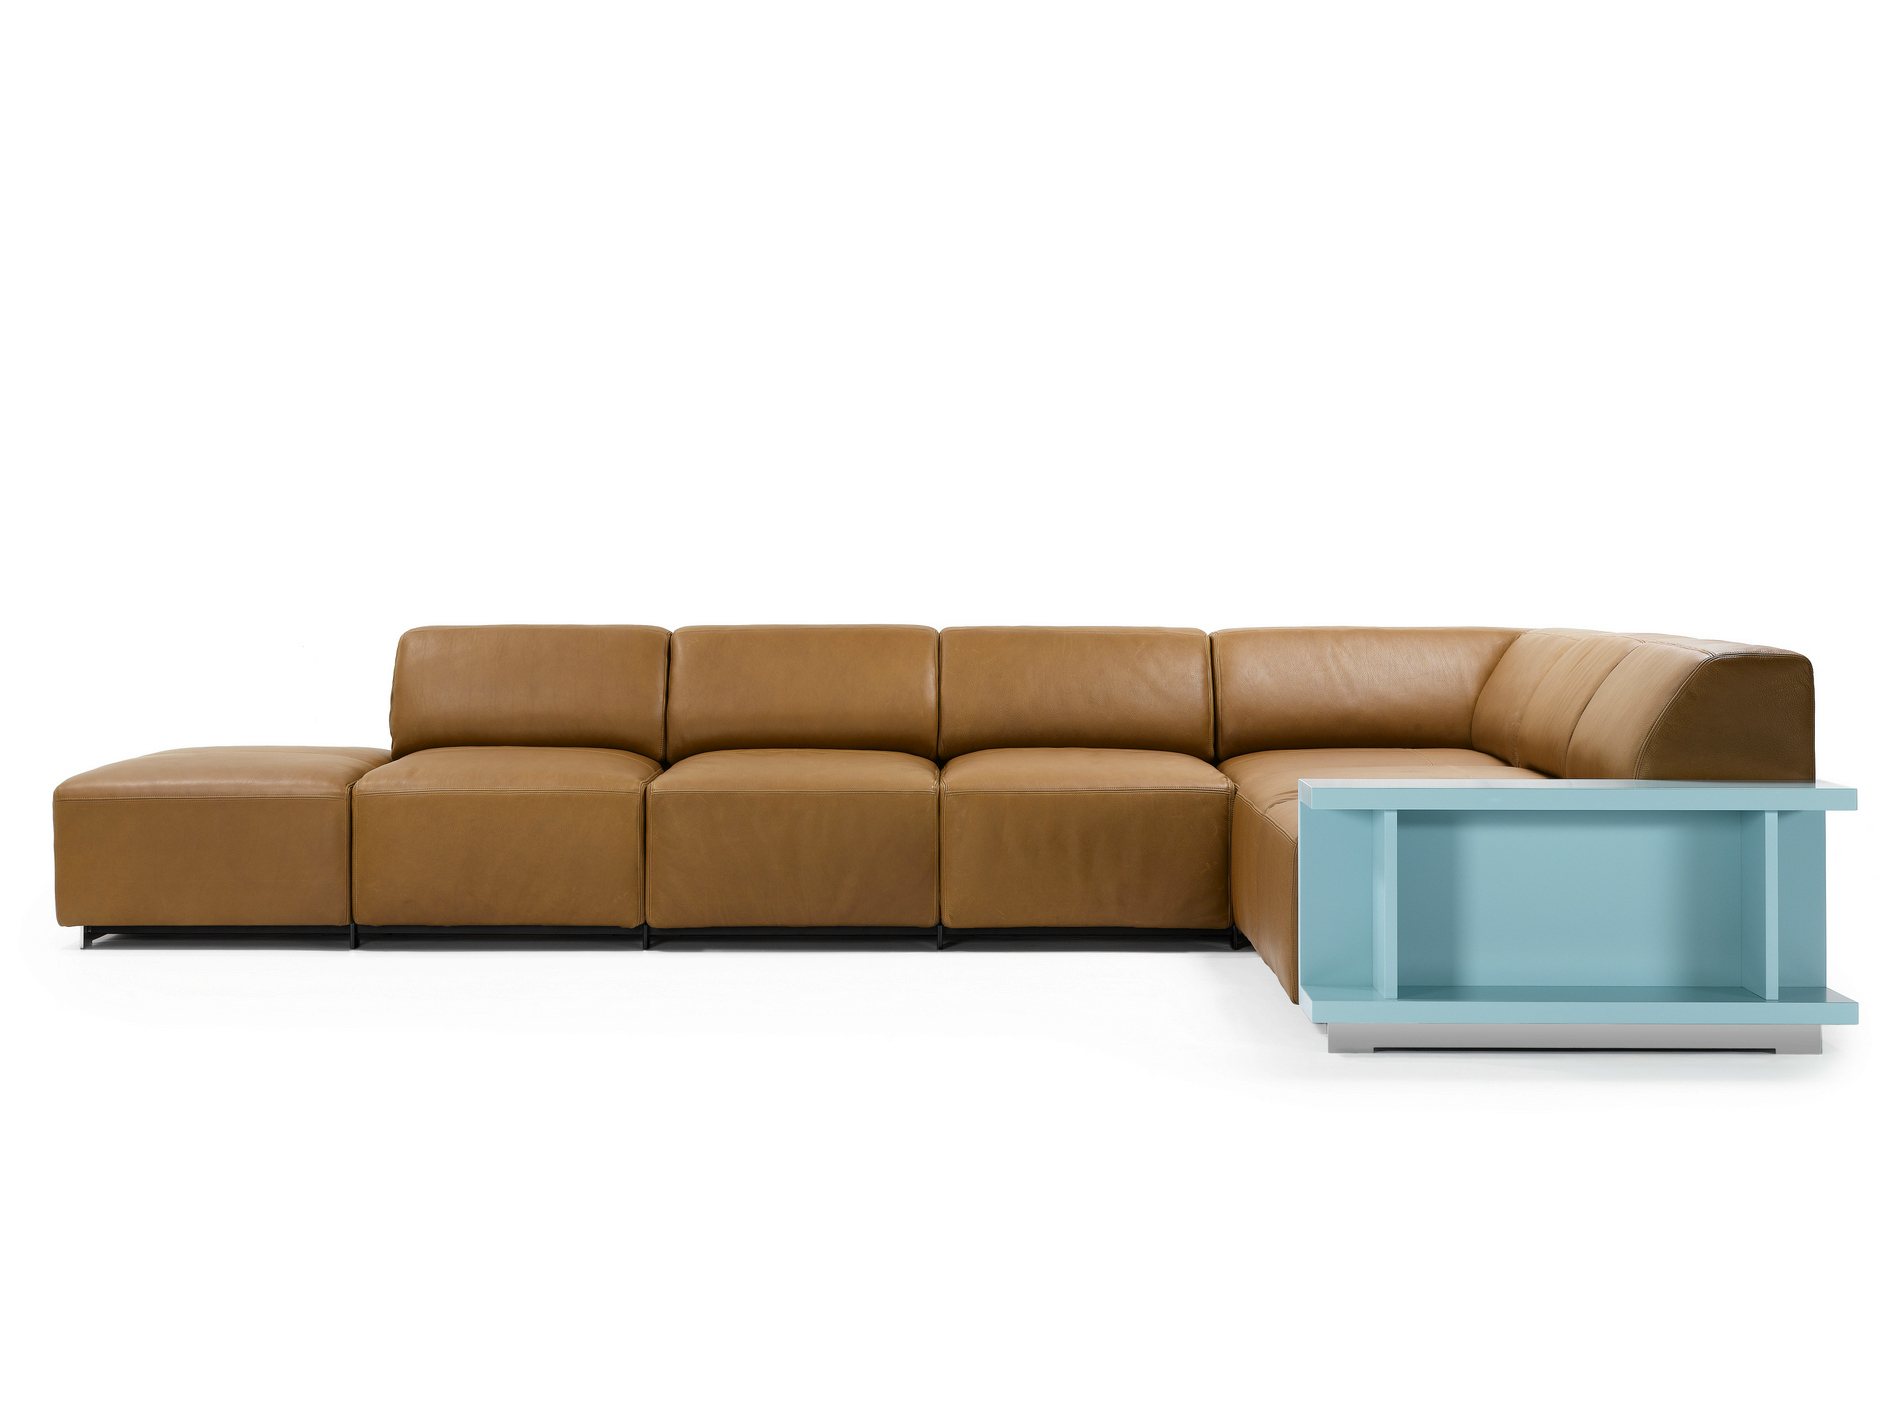 LONG ISLAND Sofa by Kai Stania for Durlet - Sohomod Blog